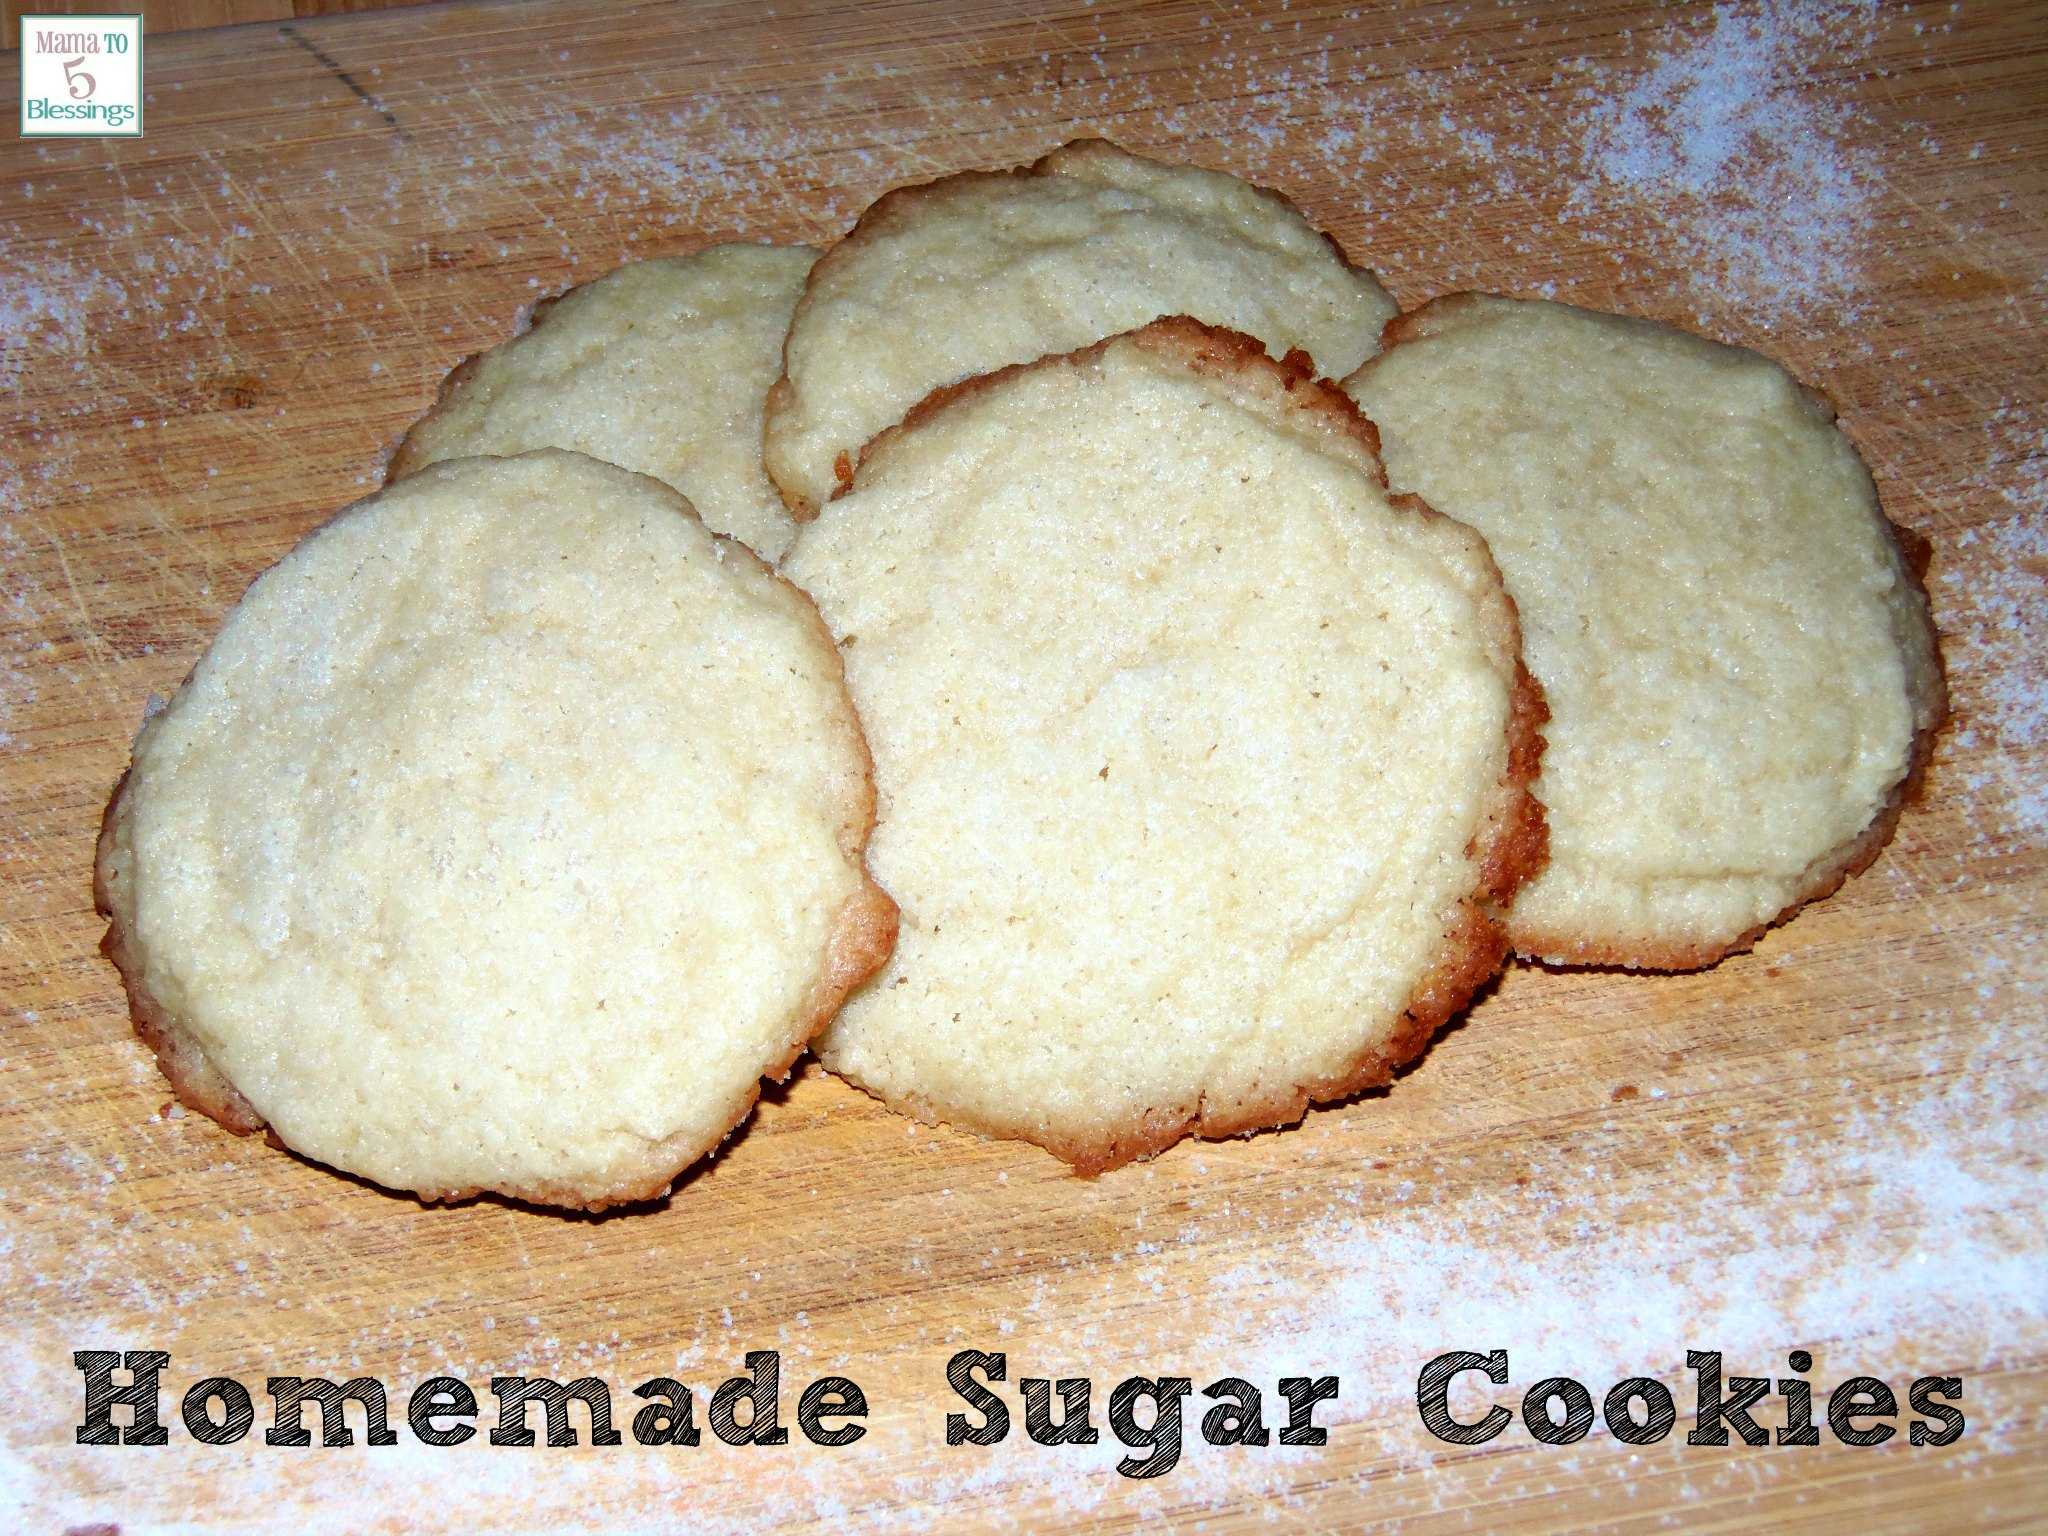 Baking Homemade Sugar Cookies With My Kids (Learn & Link With Linky)